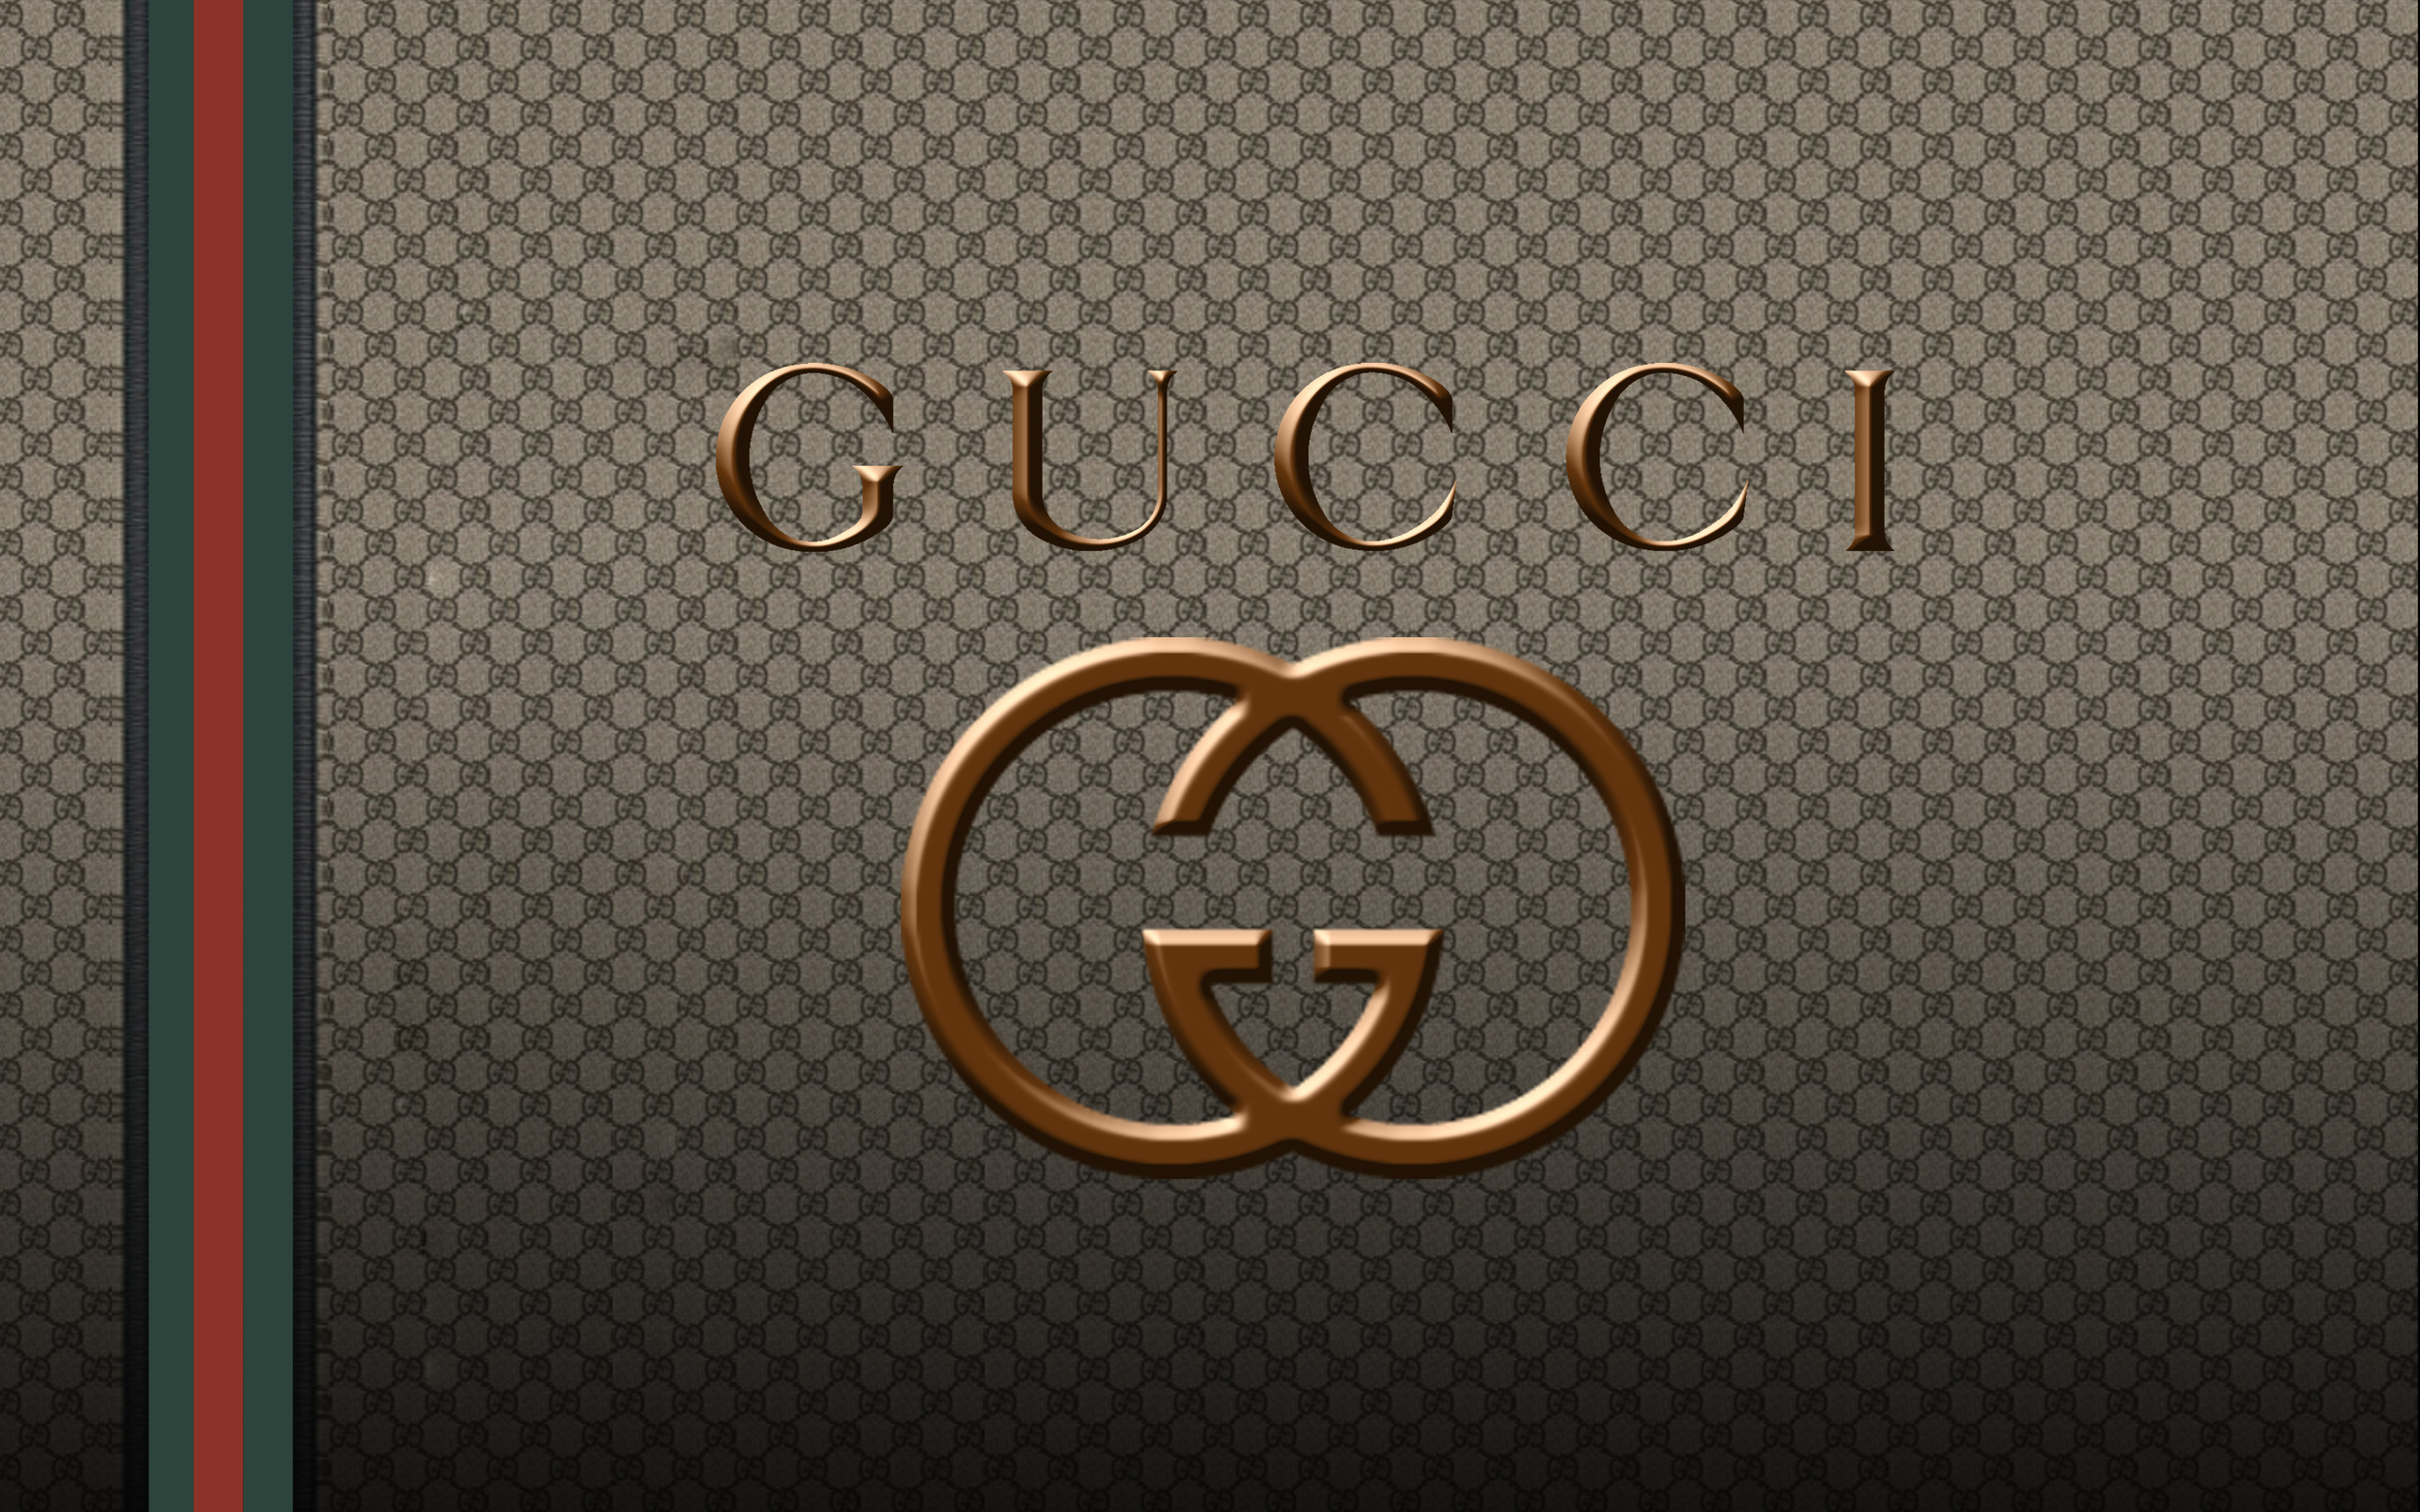 Gucci Logo Wallpapers HD 2560x1600